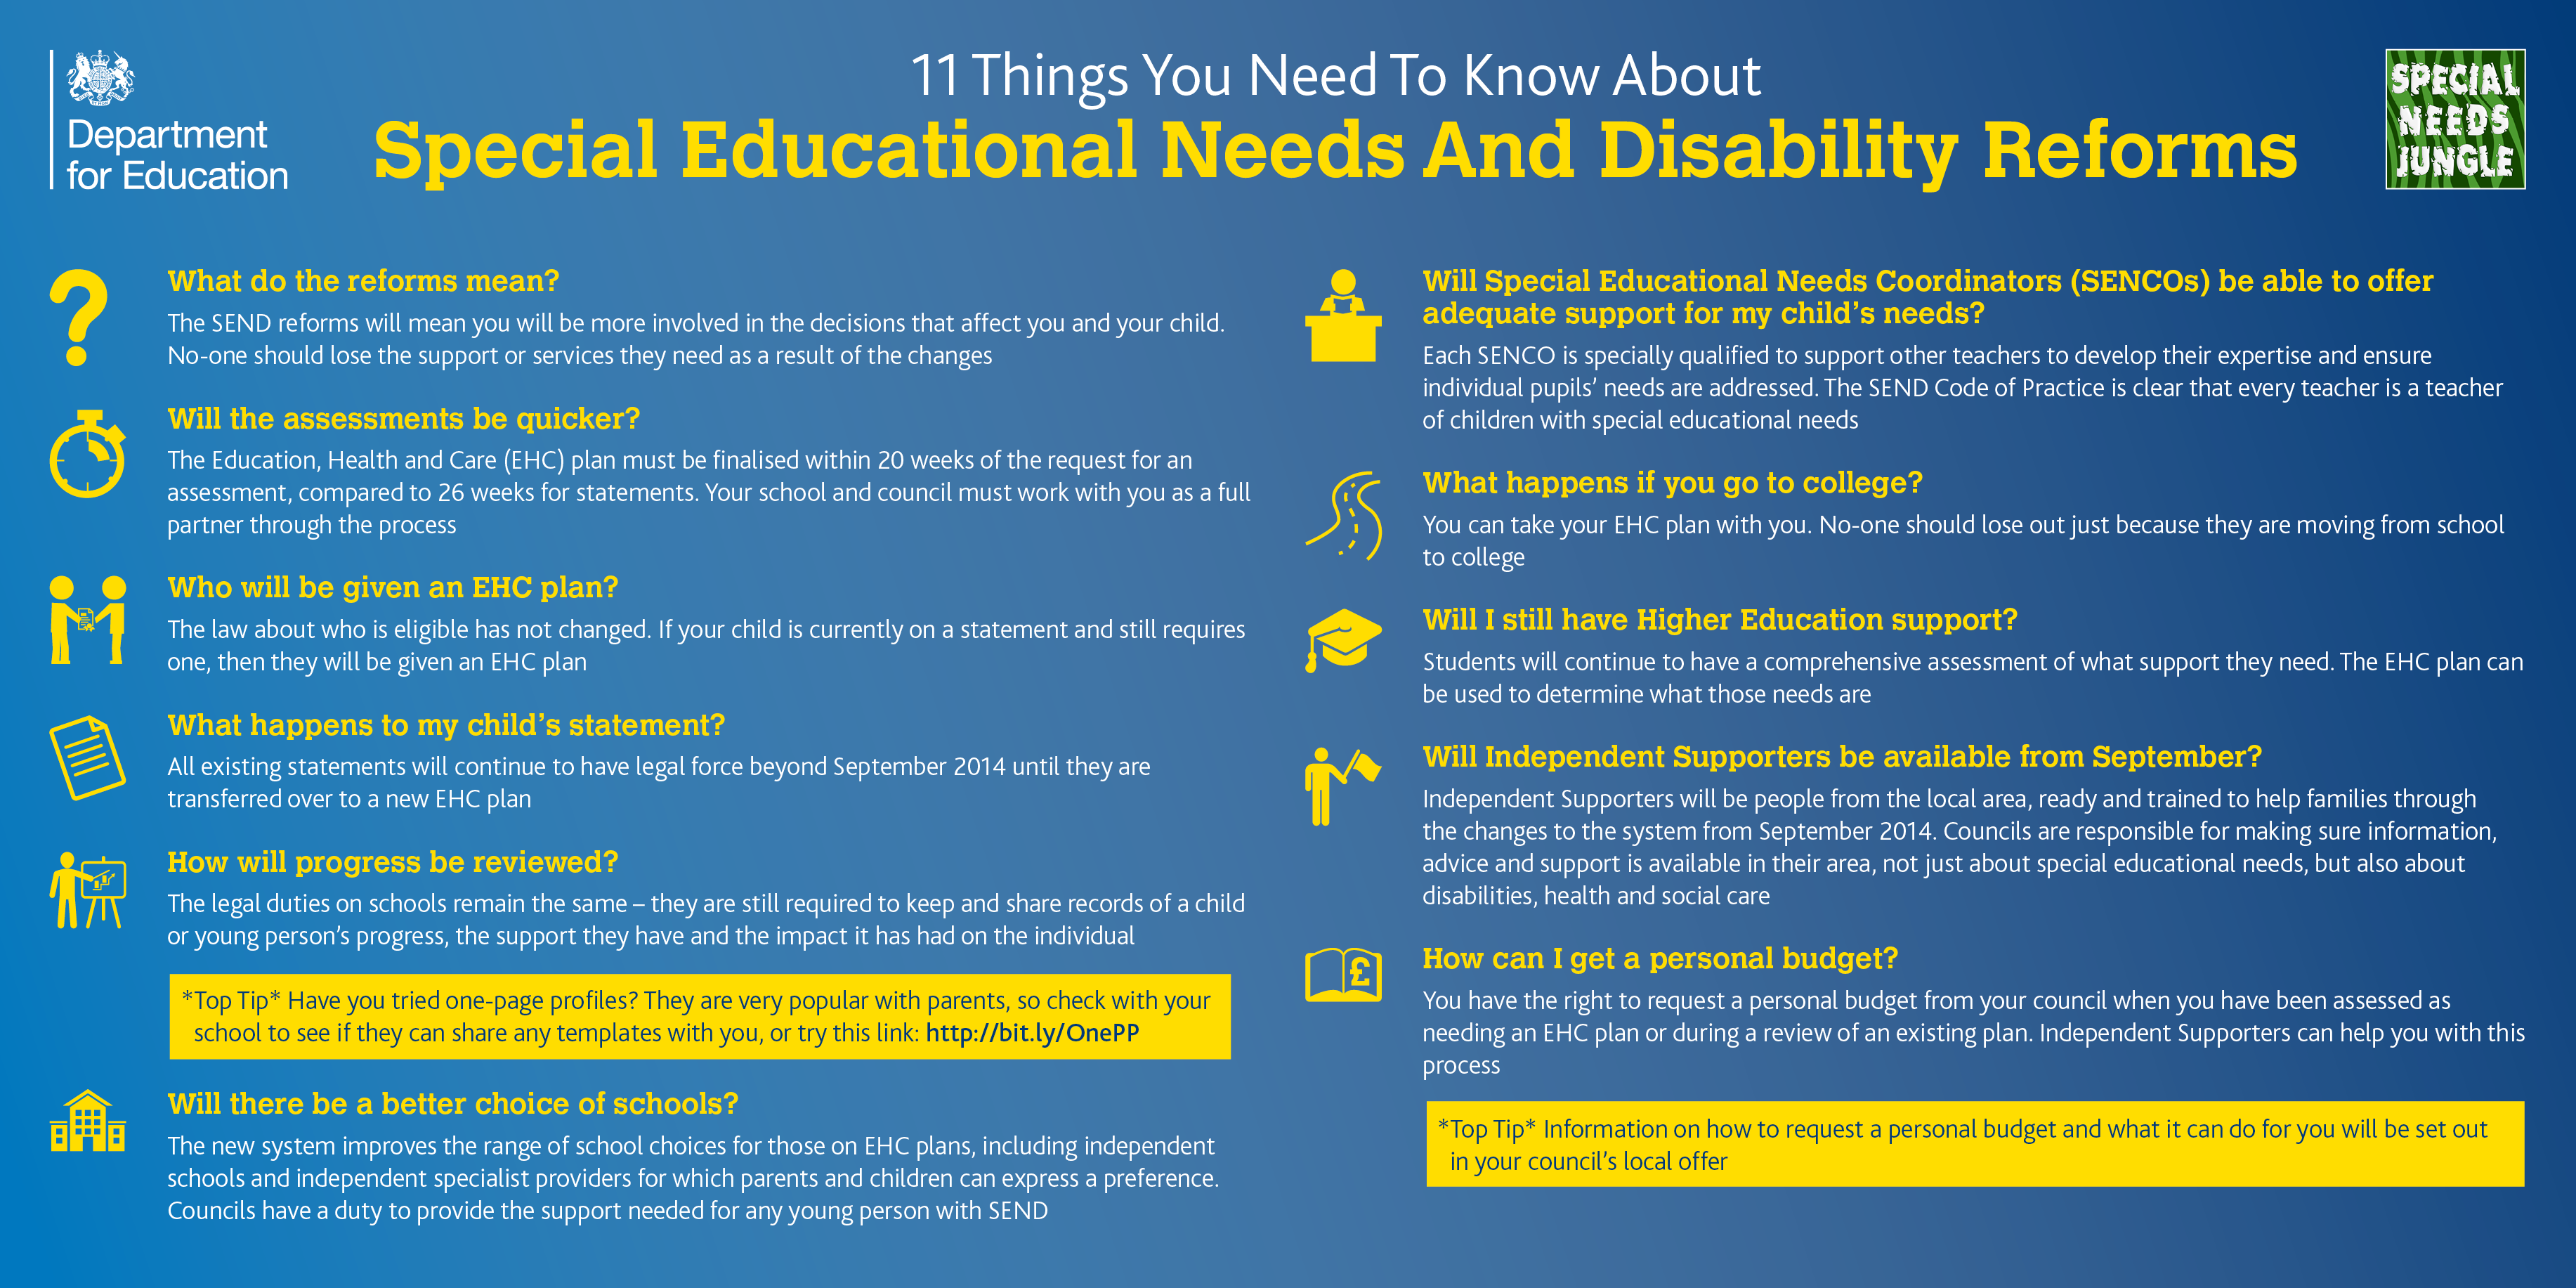 Things You Need To Know About Special Educational Needs And Disability Reforms